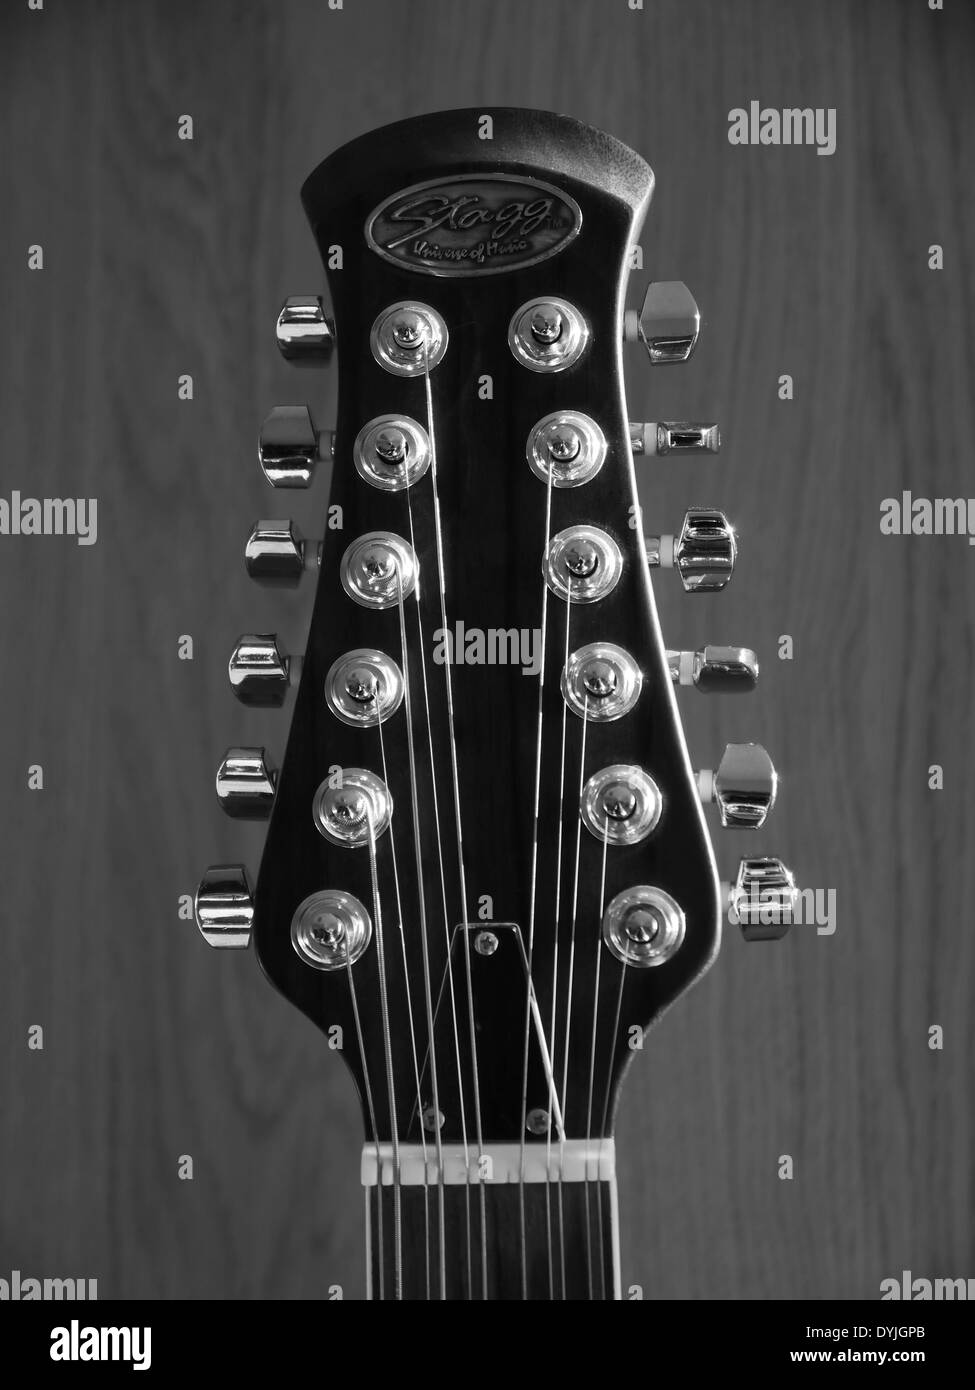 Head Stock Of 12 String Stagg Electro Acoustic Guitar Showing Chrome Tuning Pegs Strings And Nut